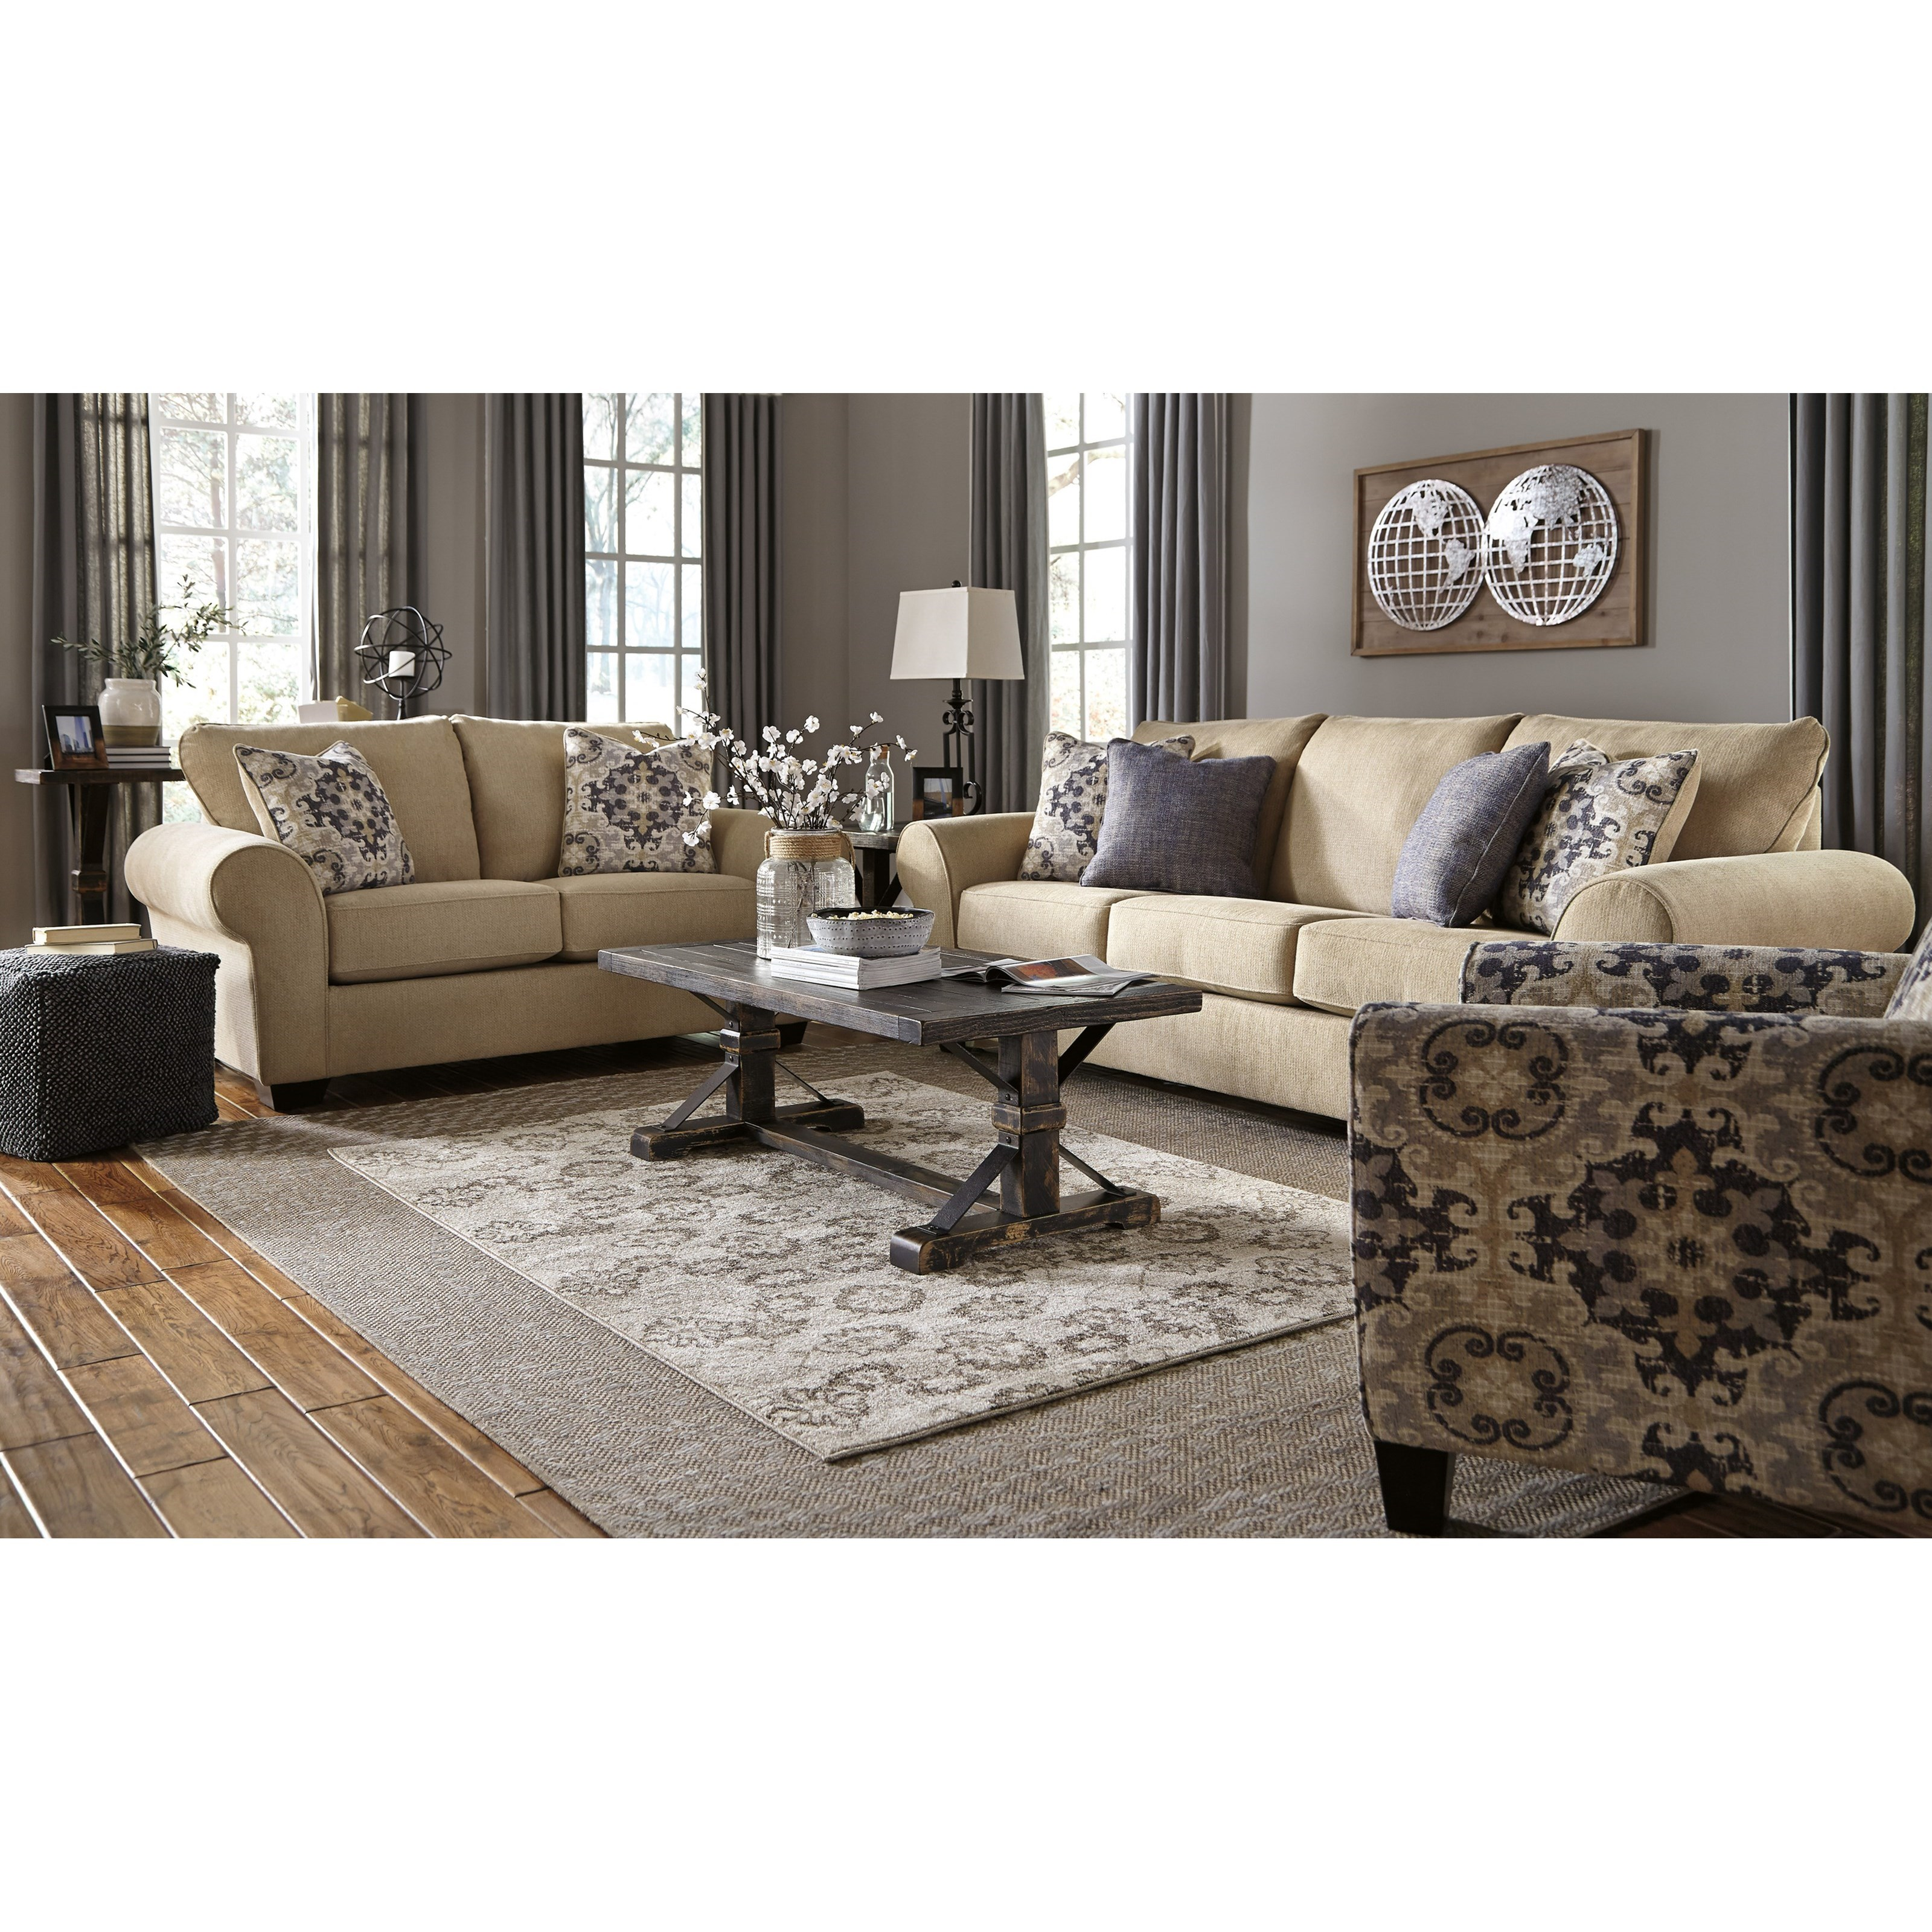 Ashley Furniture Baton Rouge Area Thousands Pictures Of